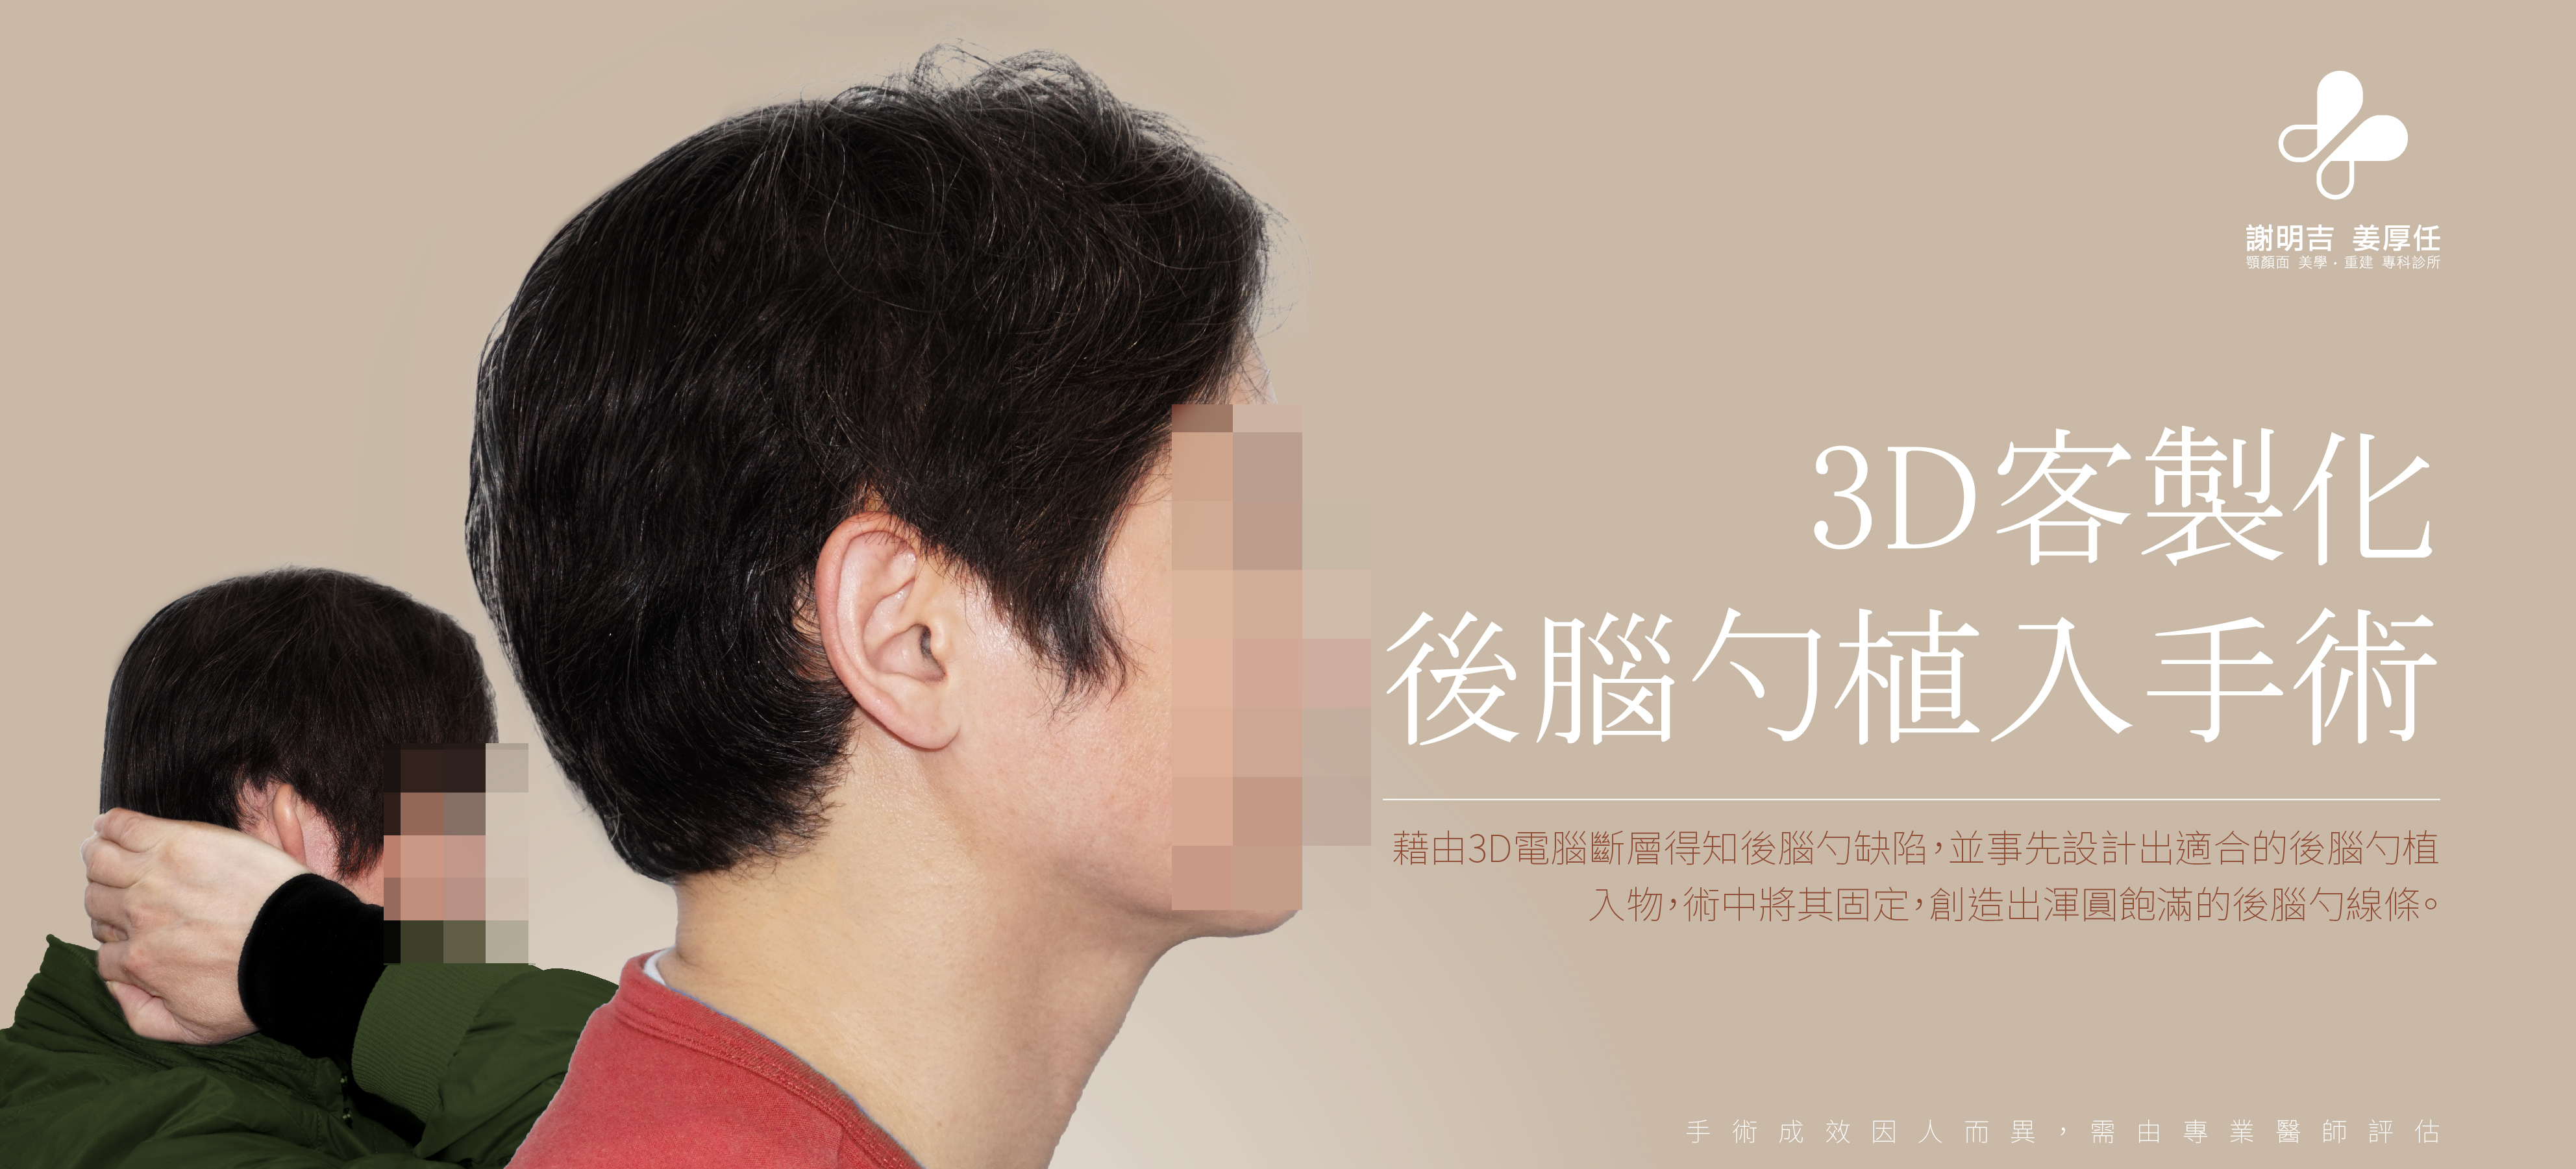 【3D Occiput Augmentation】Flat Back of Head 3D Occiput Augmentation